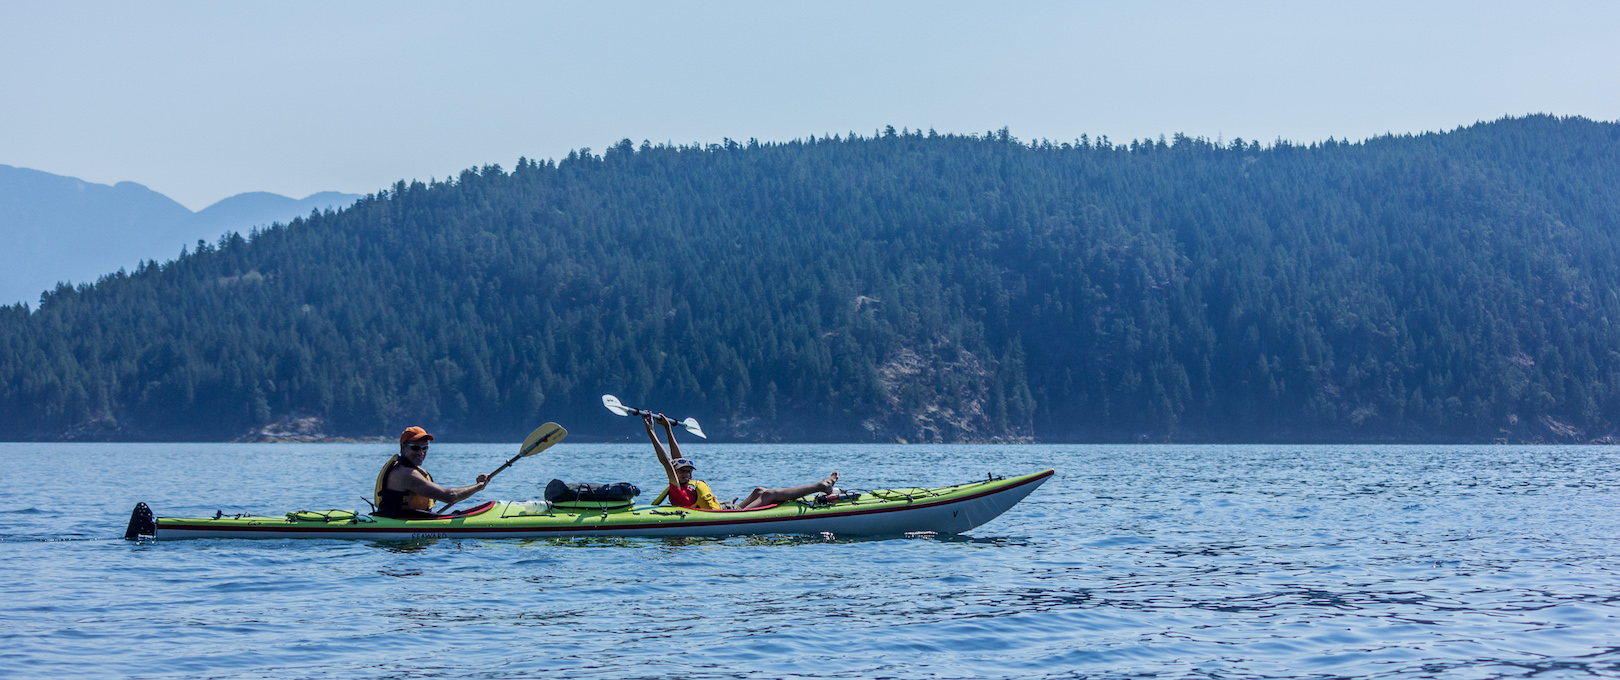 A father and son paddling in a double kayak in Desolation Sound